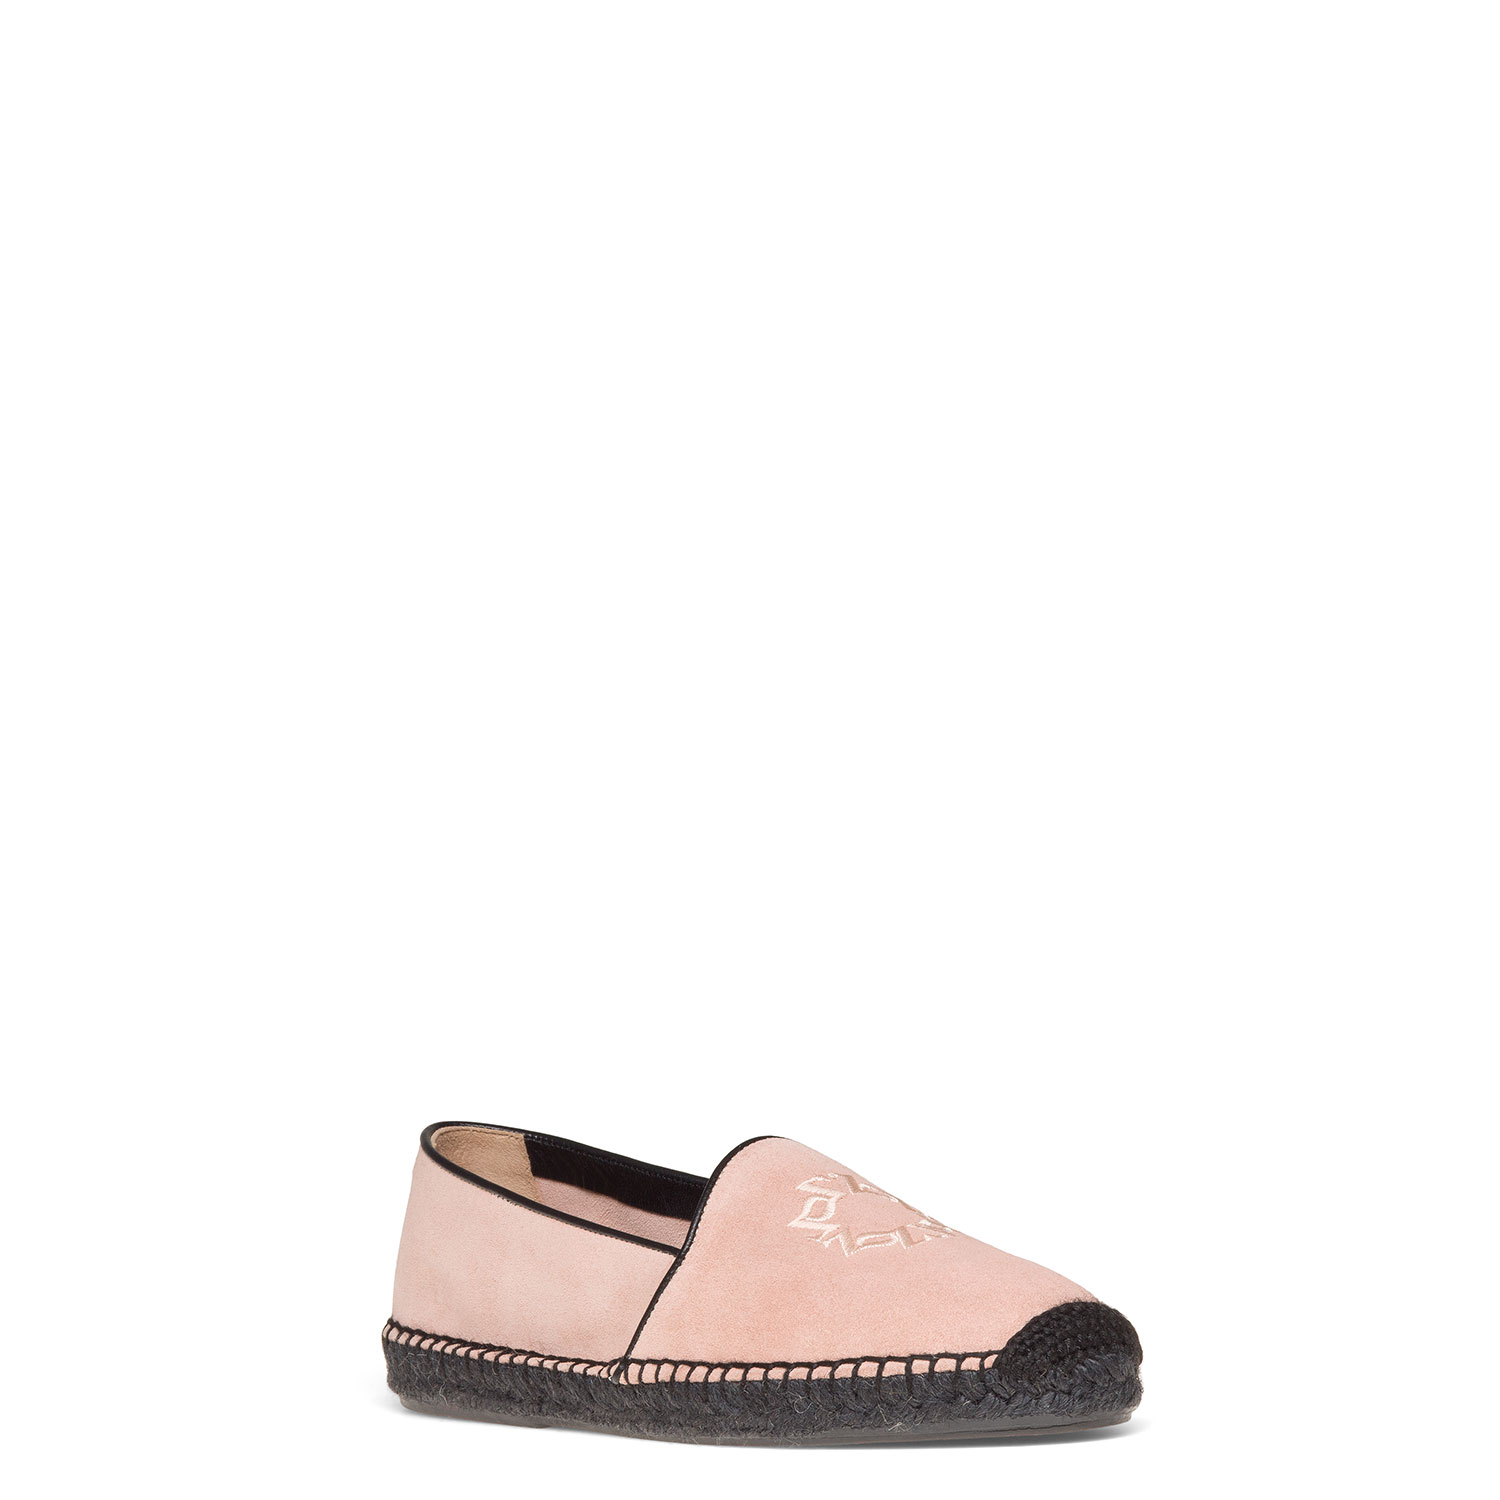 Women's shoes PAZOLINI CT-HOL5-12